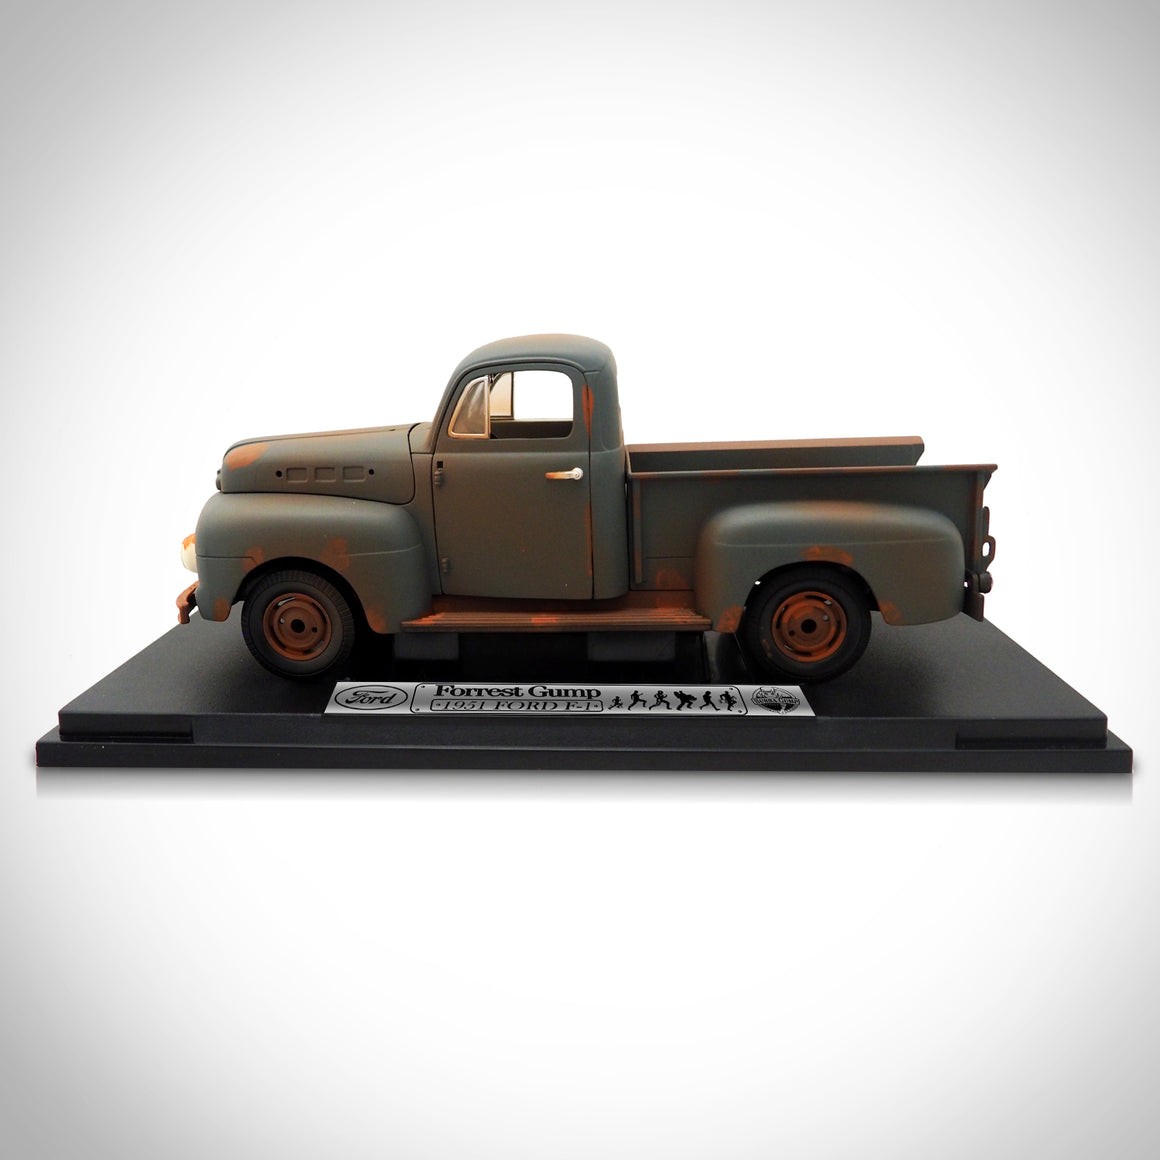 FORREST GUMP - 1951 FORD F1 1/18 Die-Cast Truck Car